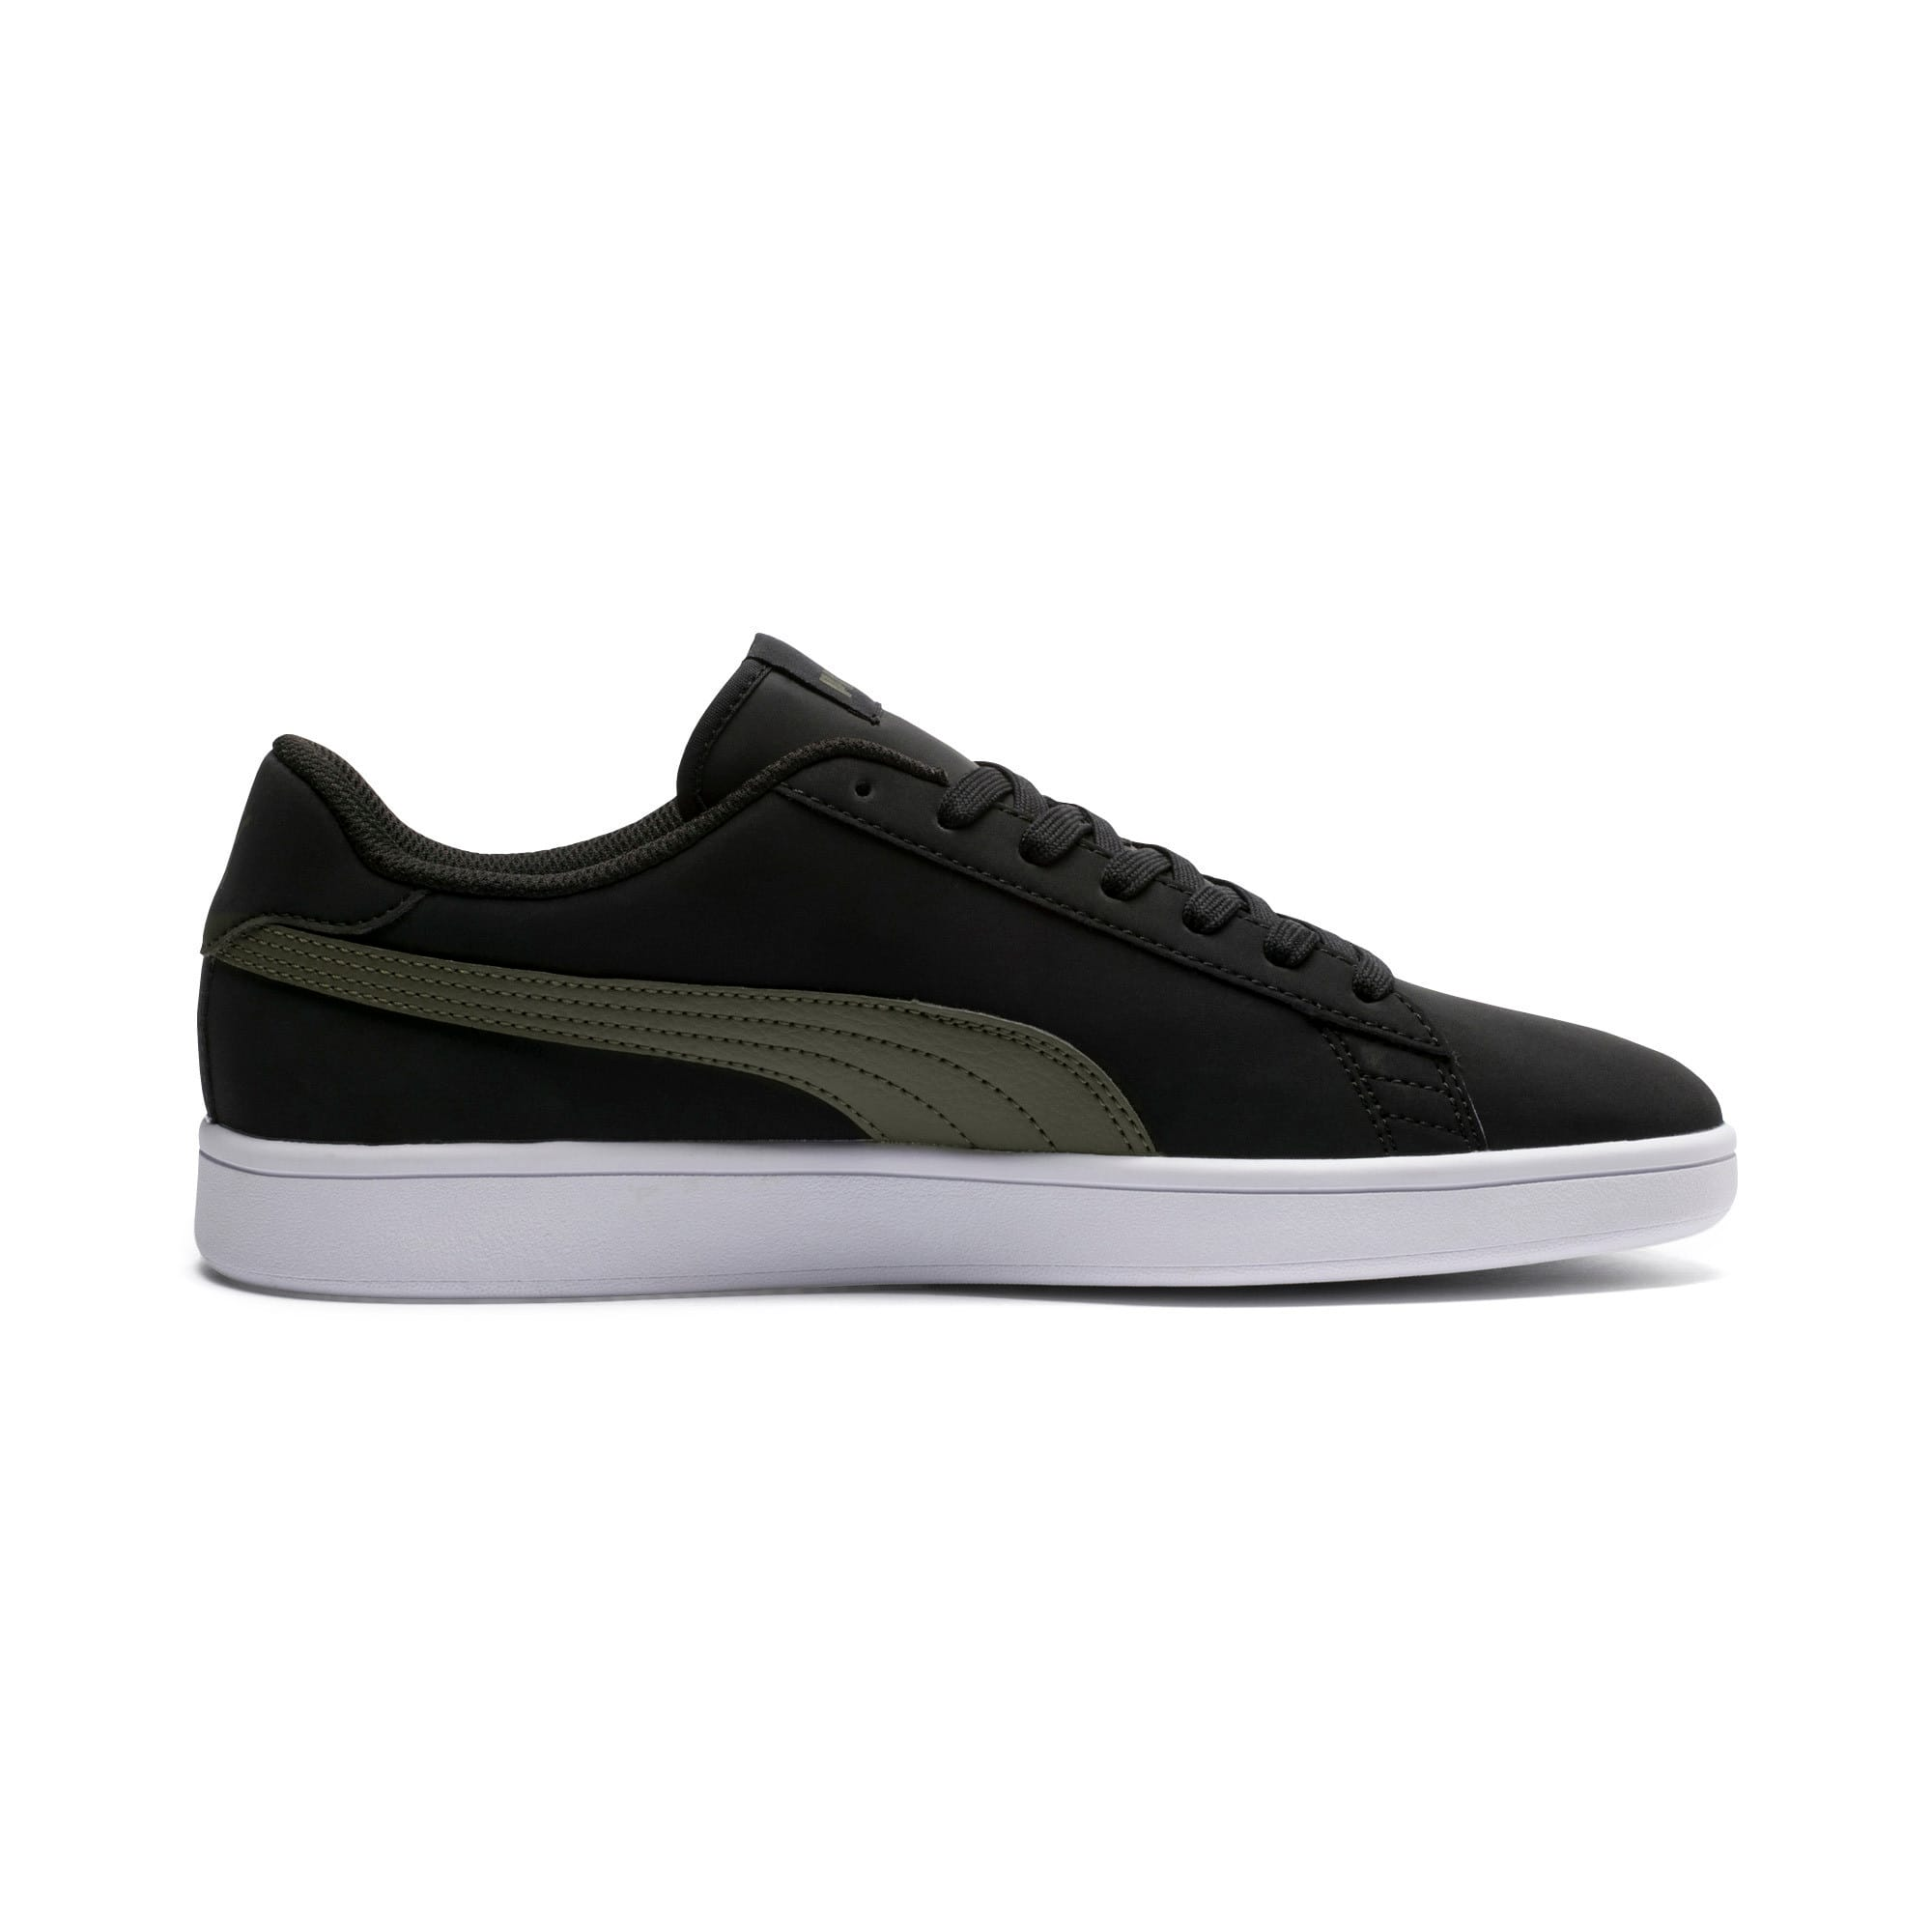 Thumbnail 5 of Smash v2 Buck Sneaker, Puma Black-Forest Night, medium